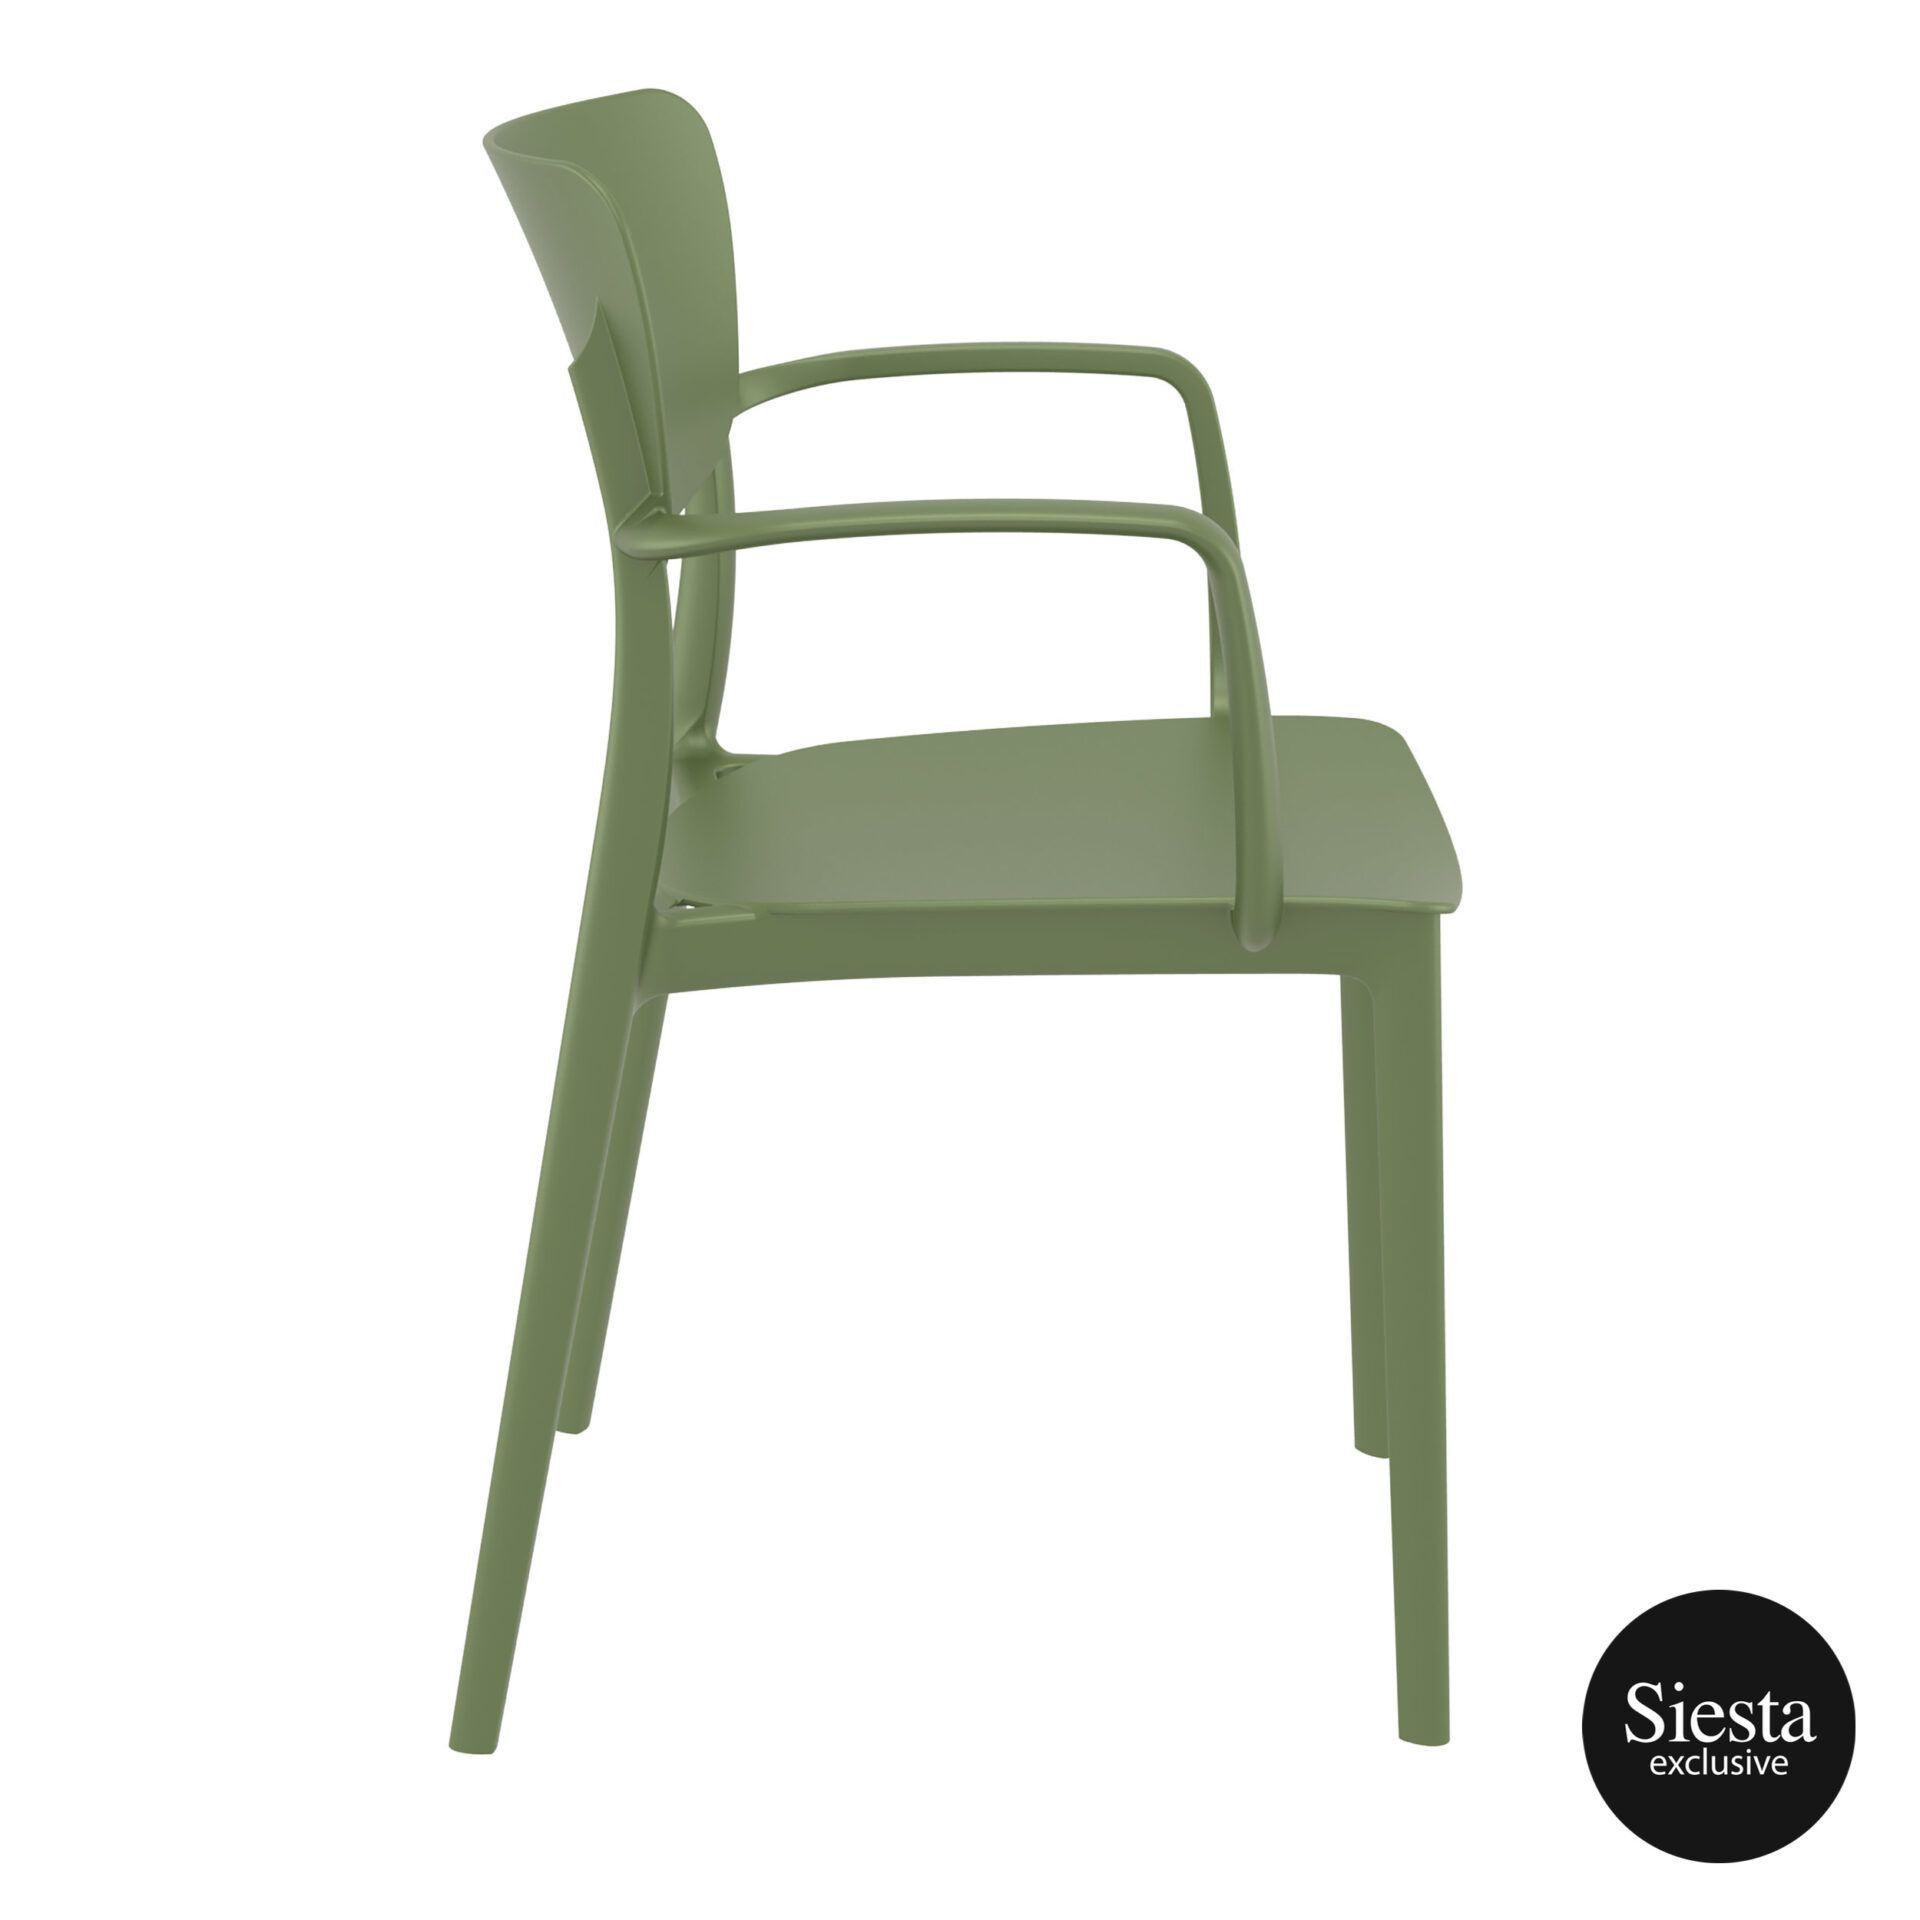 polypropylene hospitality seating lisa armchair olive green side 1